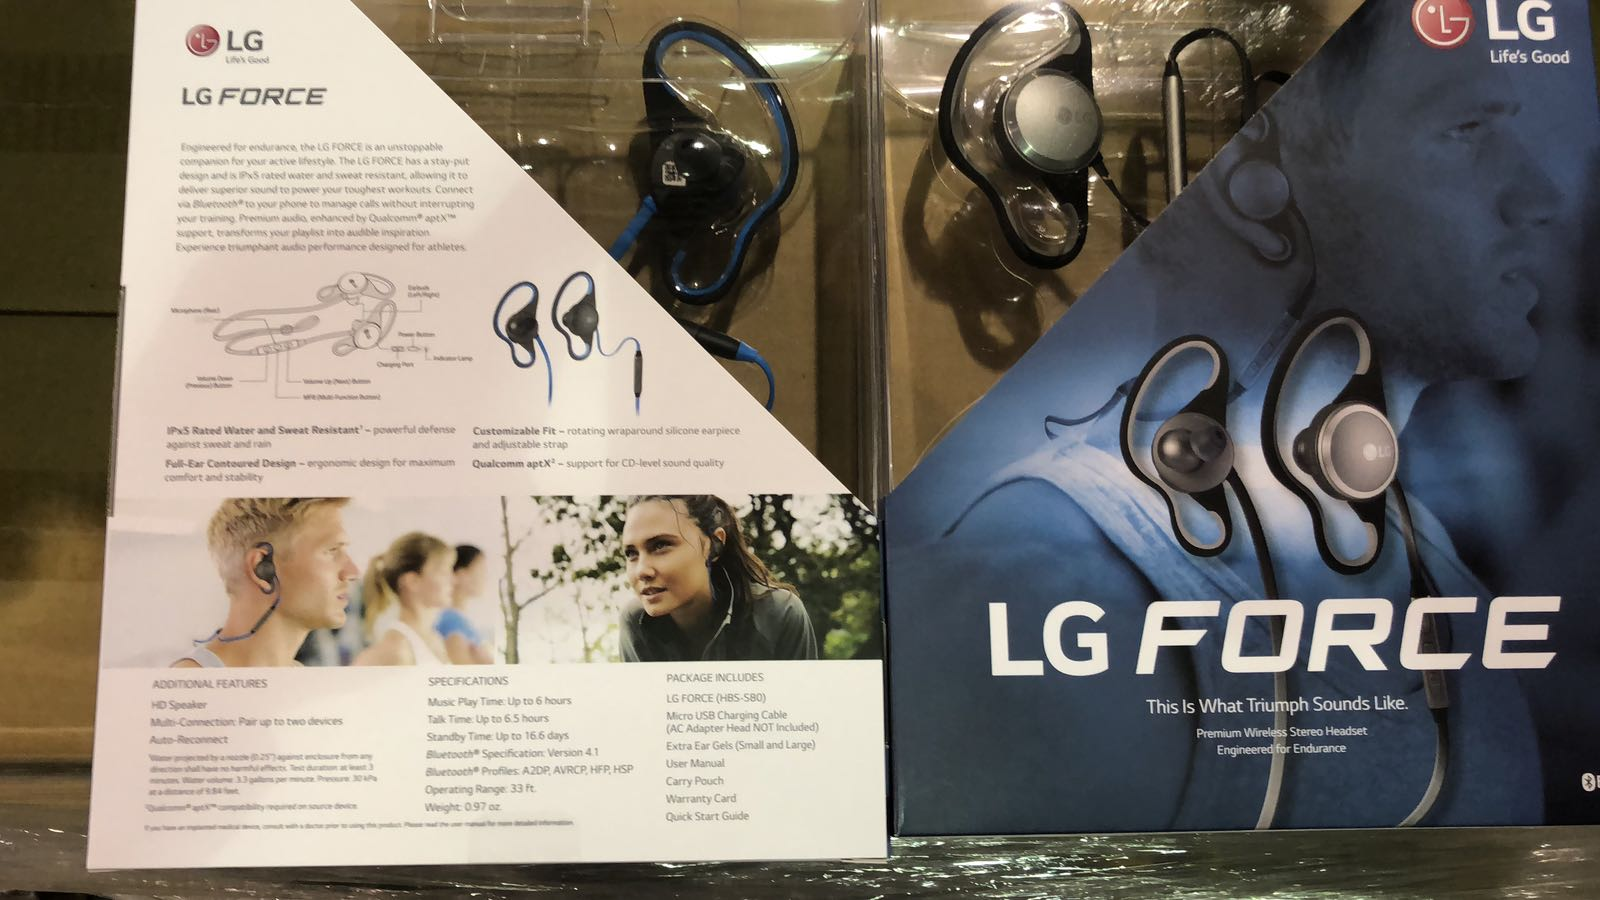 ? WTS: READY STOCK MIAMI | $24.95‼? LG Force HBS-S80!! BRANDNEW IN MASTER CARTON.